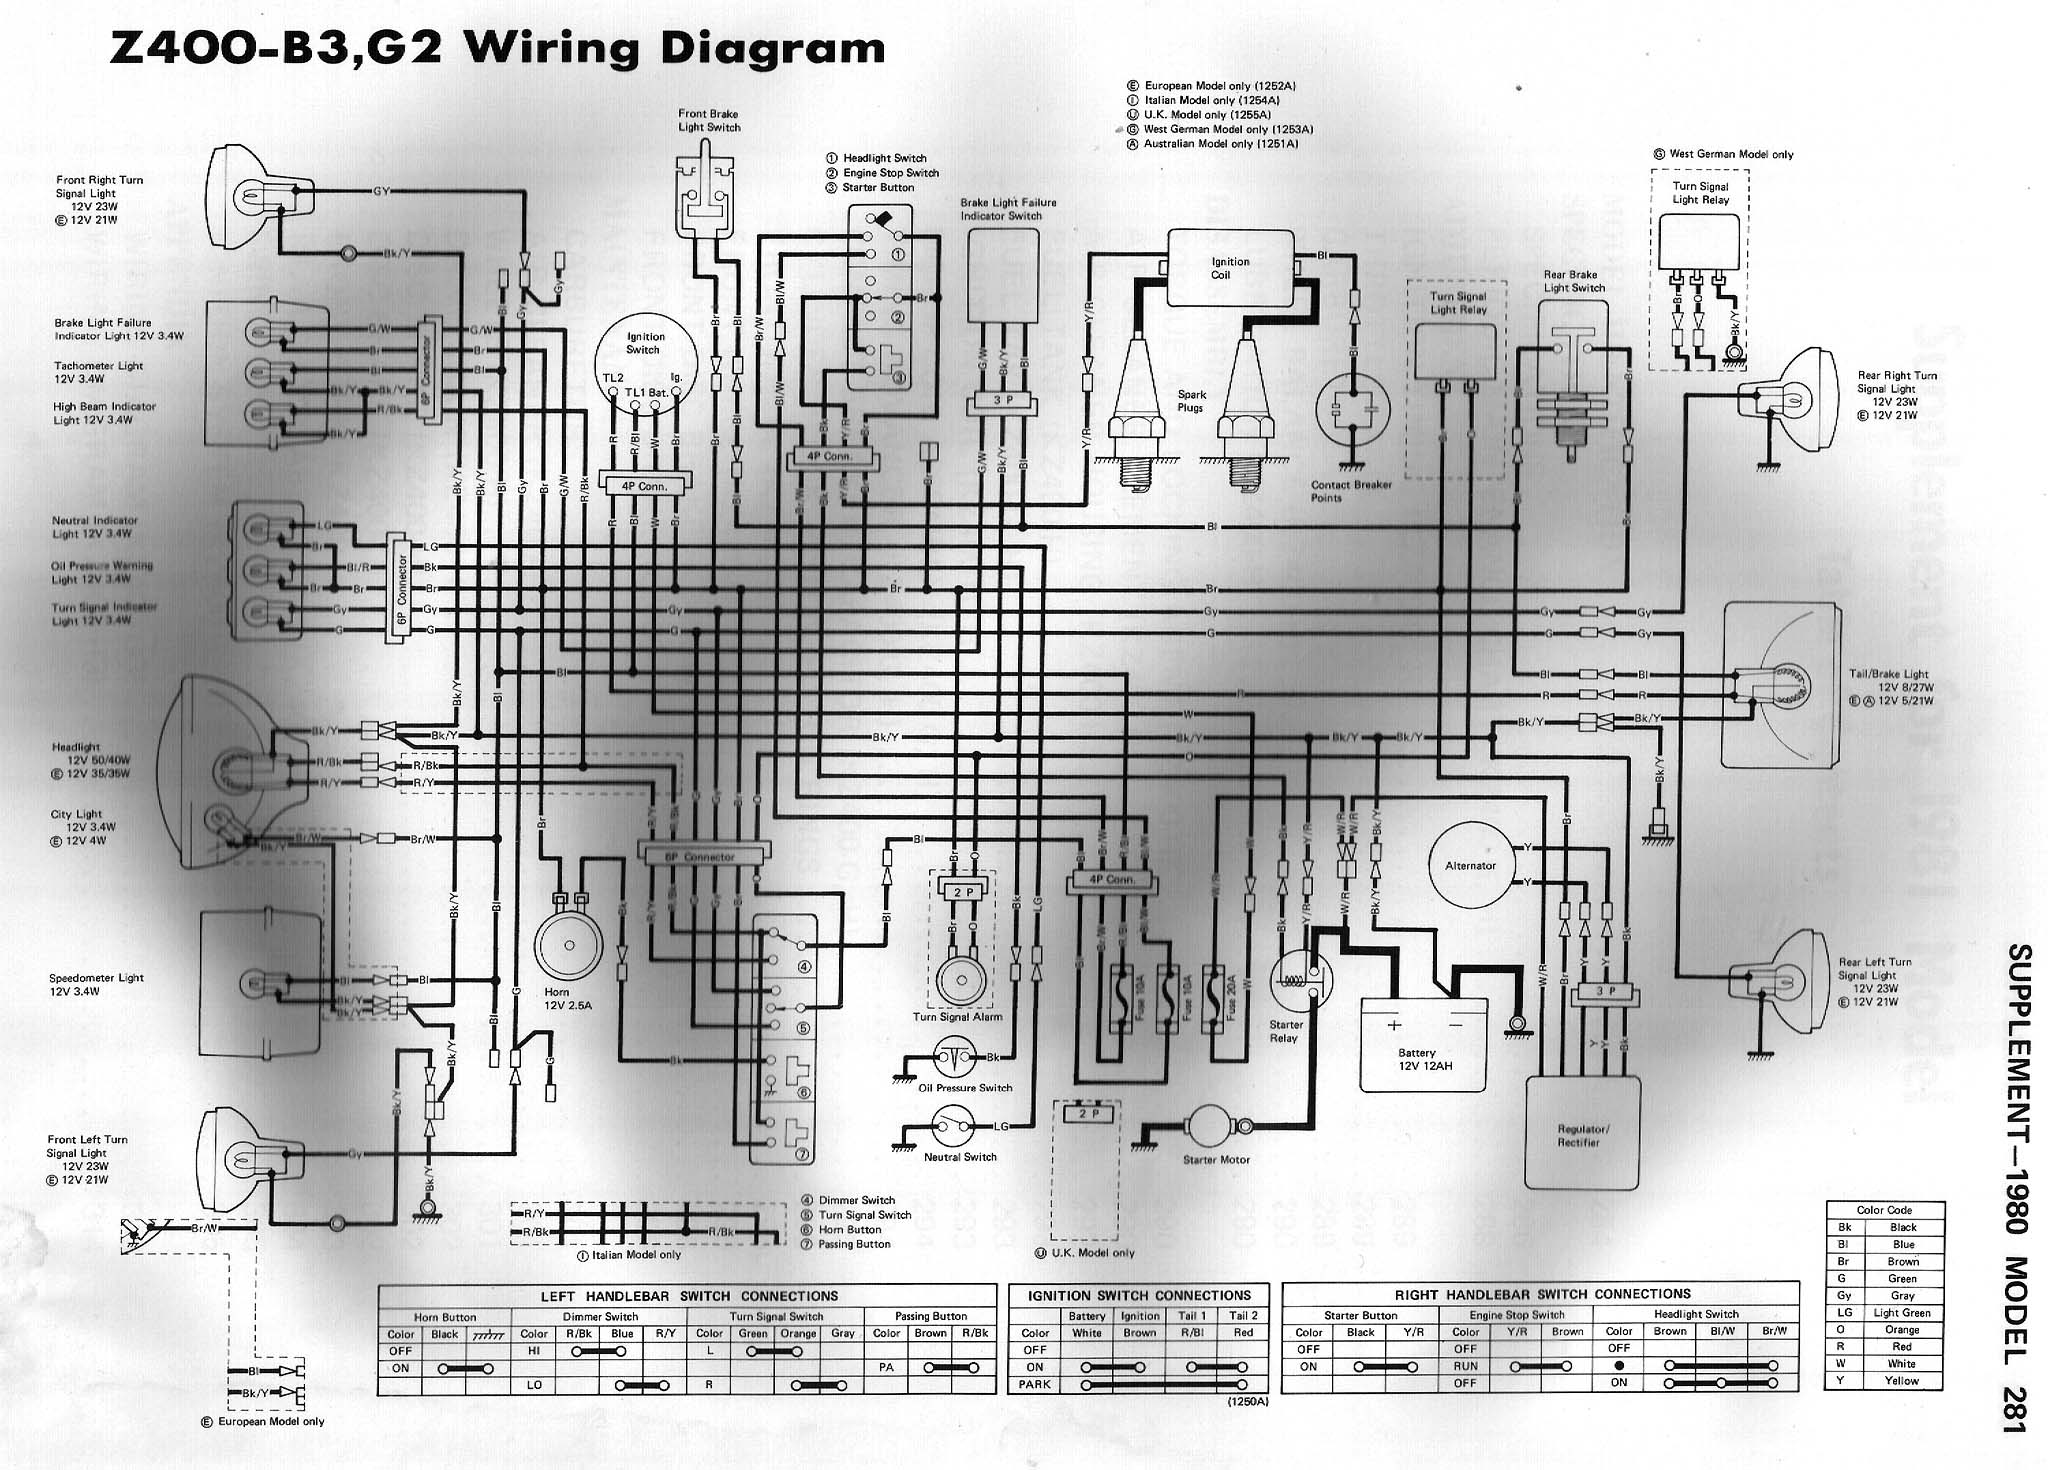 K Z 400 Wiring Diagram Archive Of Automotive Motorcycle 19781979 Complete All About Index Techh Tips Bilder Diagrams Rh Kz400 Com